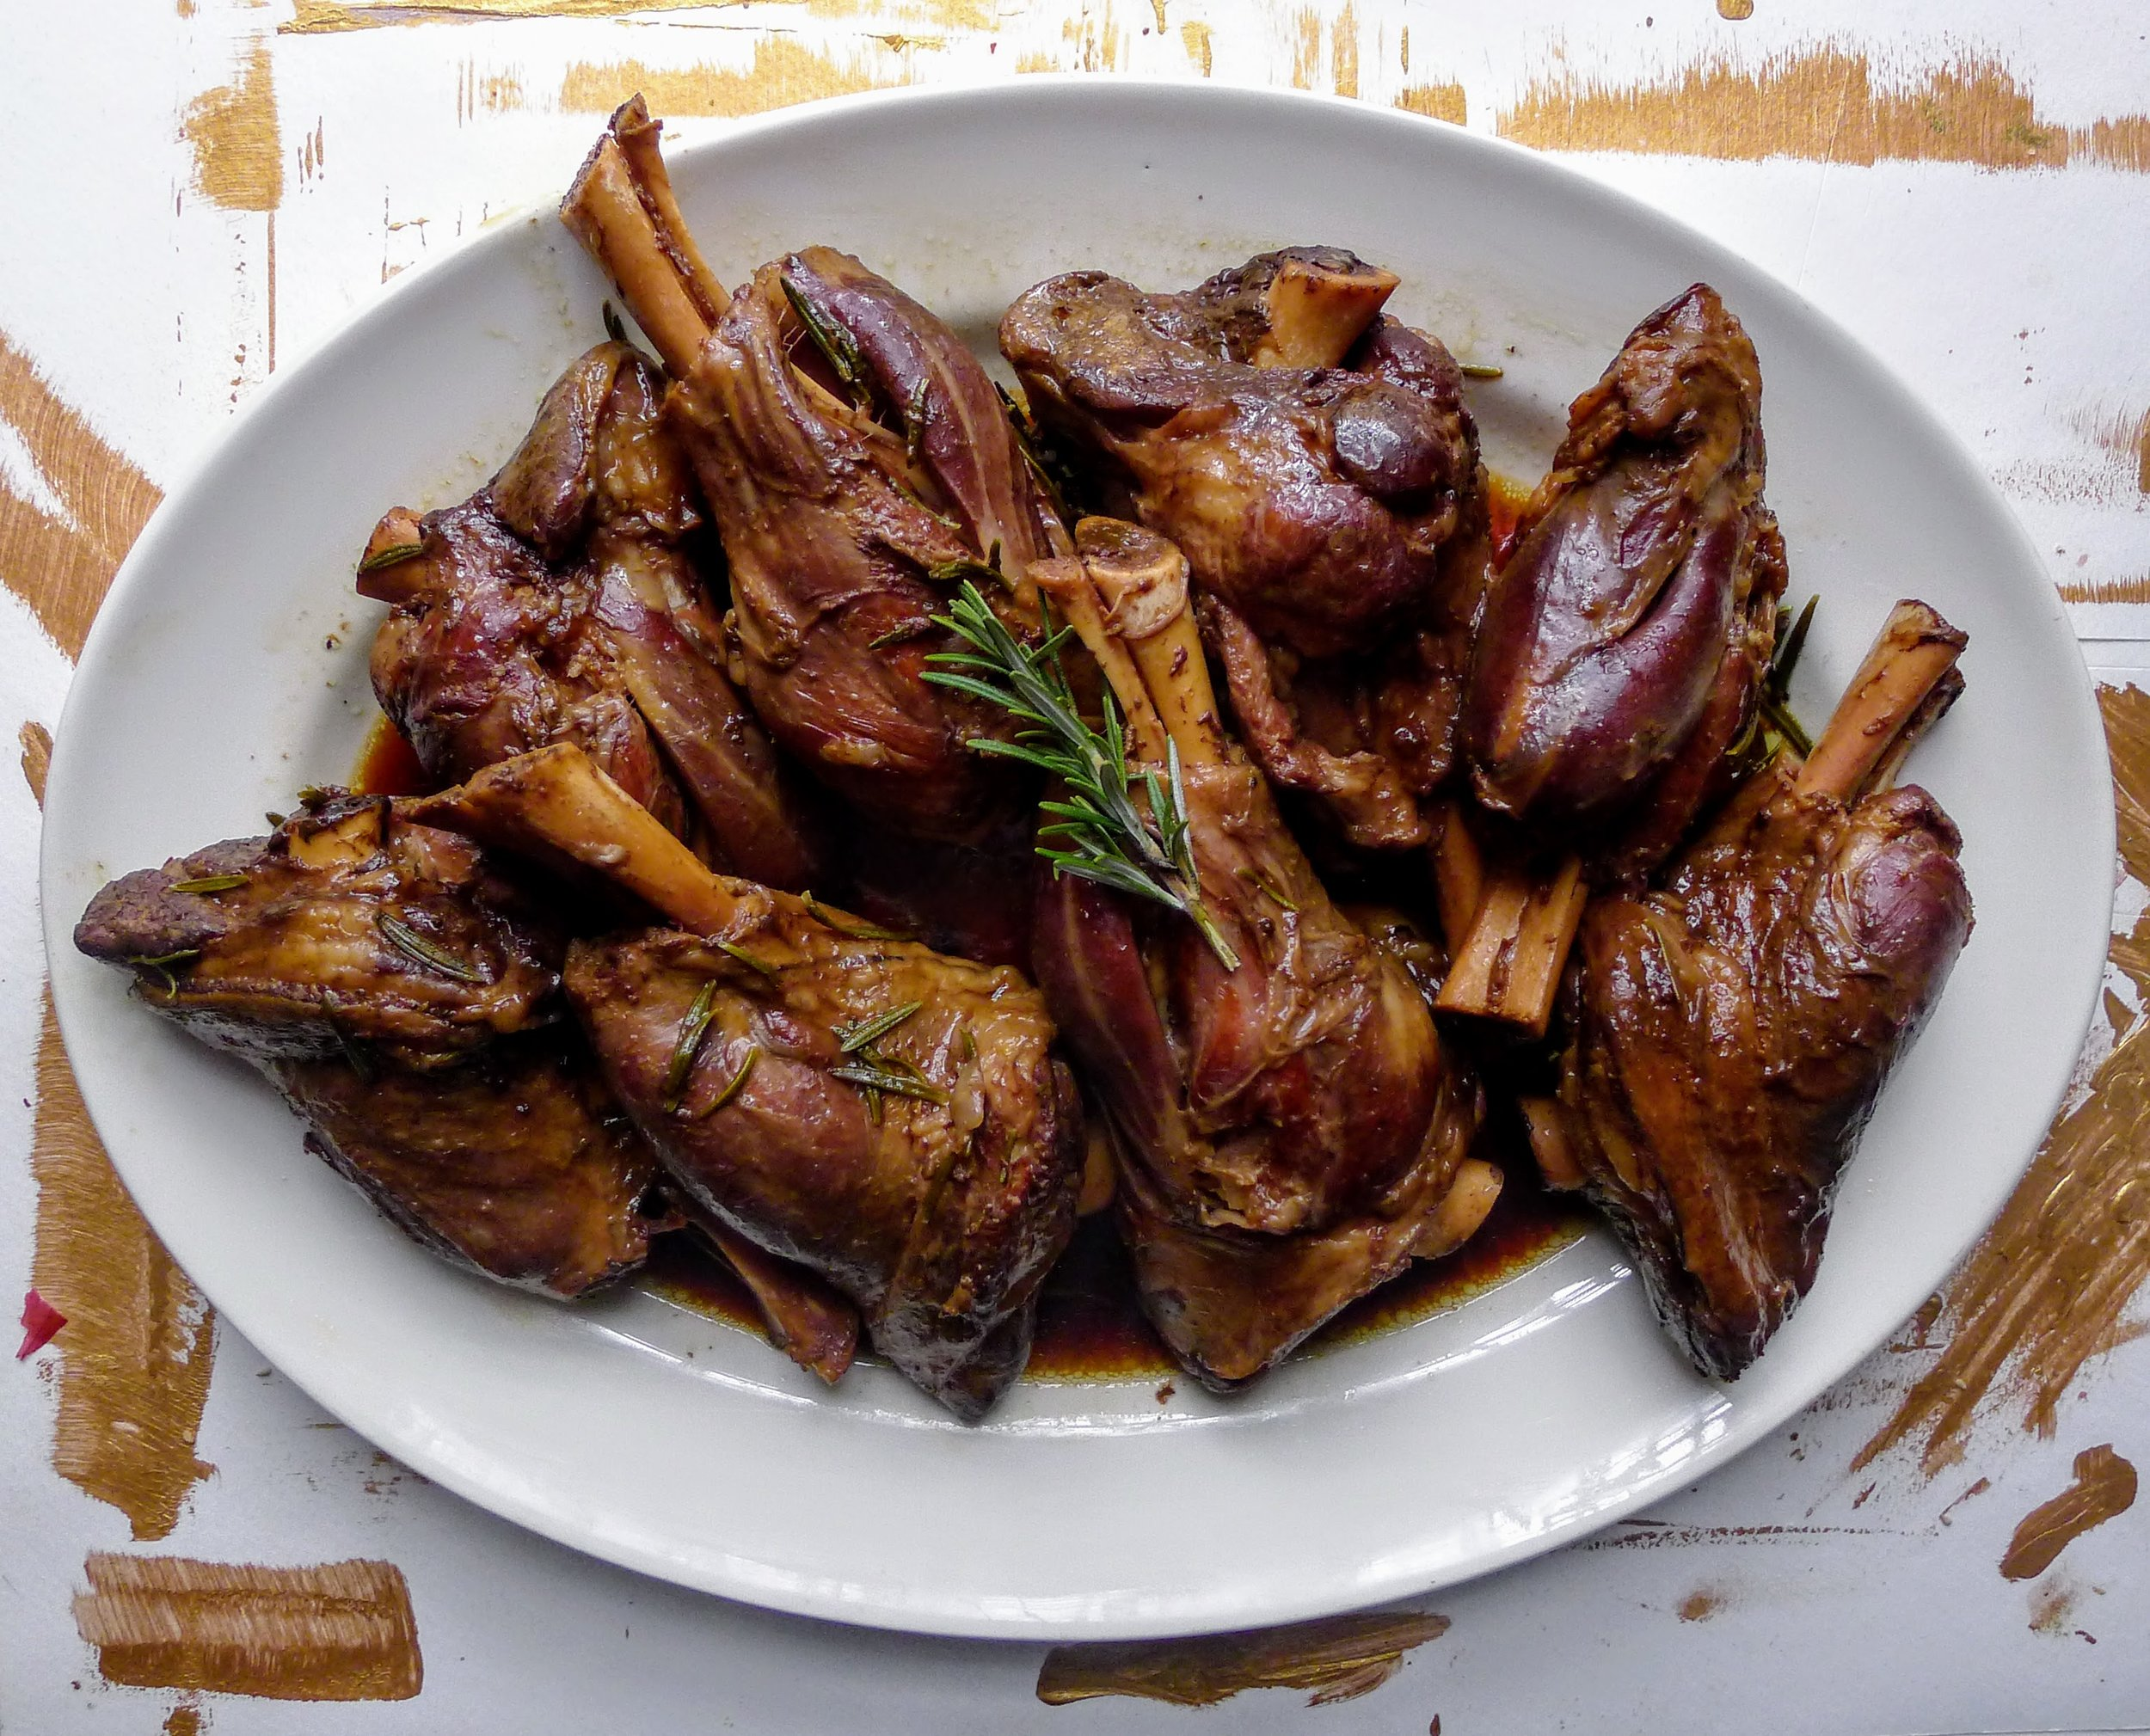 24-hour Sous Vide Lamb Shanks in Soy sauce, Extra Virgin Olive Oil and fresh Rosemary